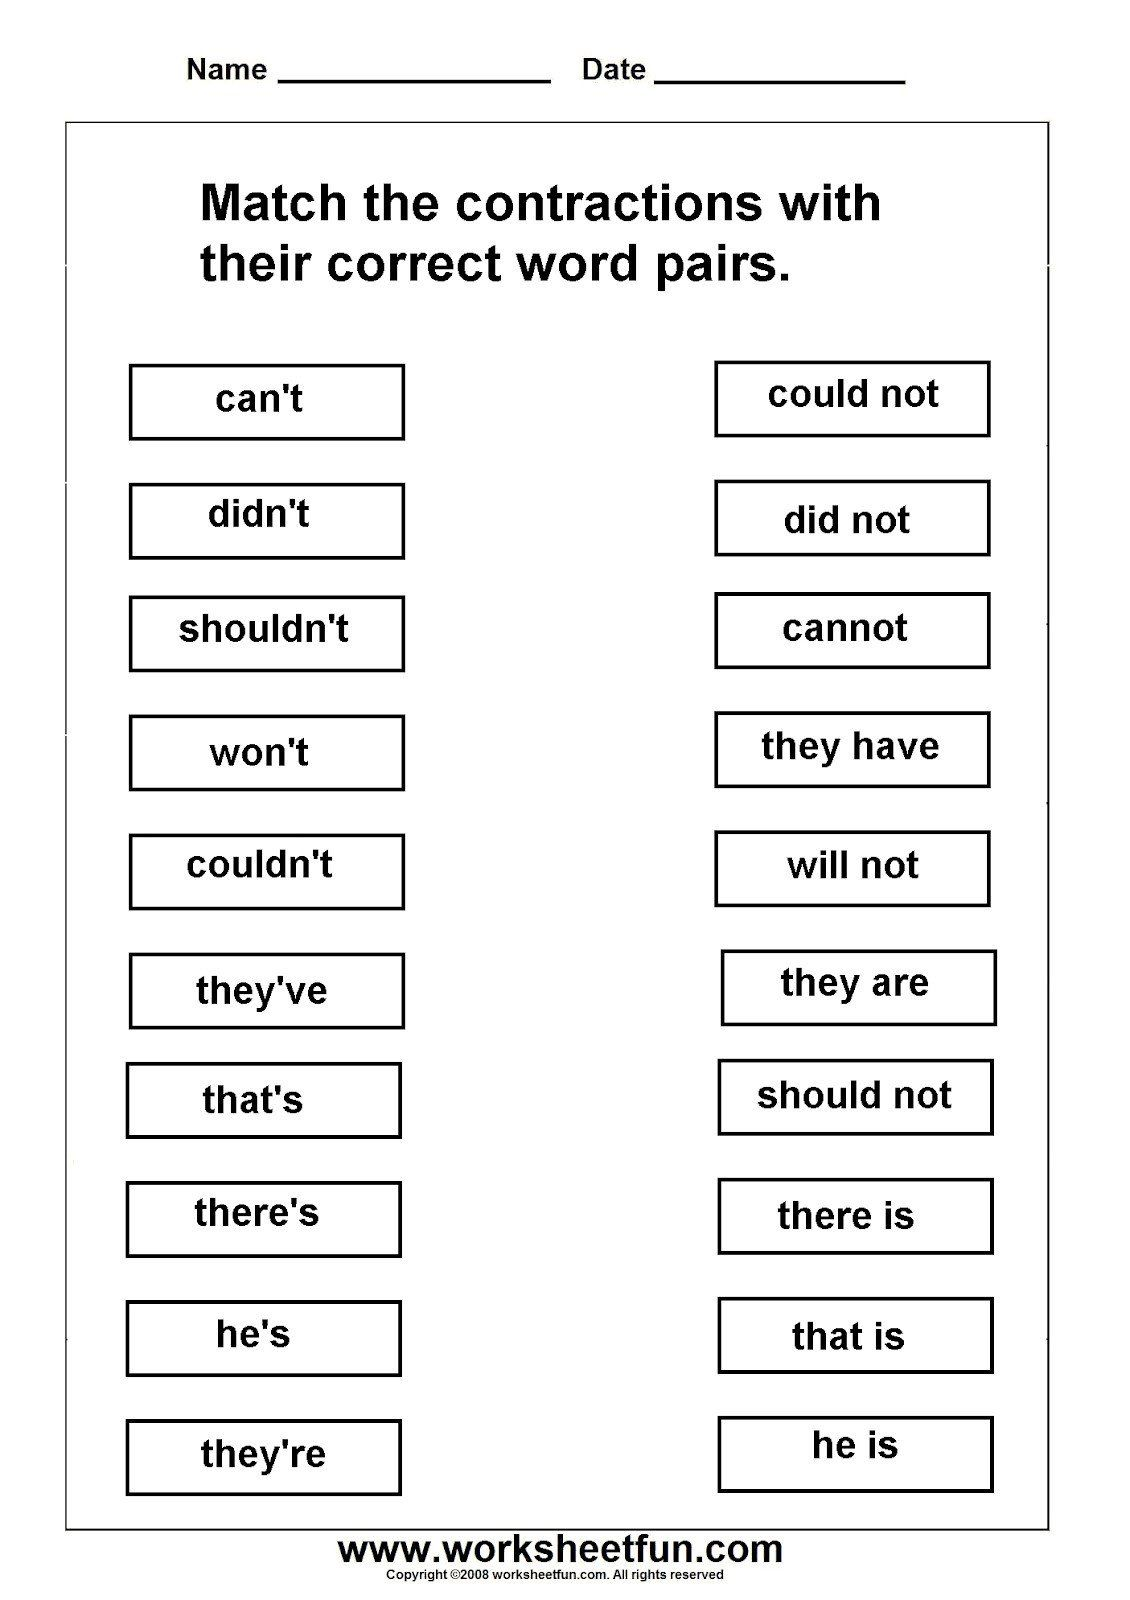 Contractions Worksheets Free 5th Grade   Printable Worksheets and  Activities for Teachers [ 1600 x 1130 Pixel ]